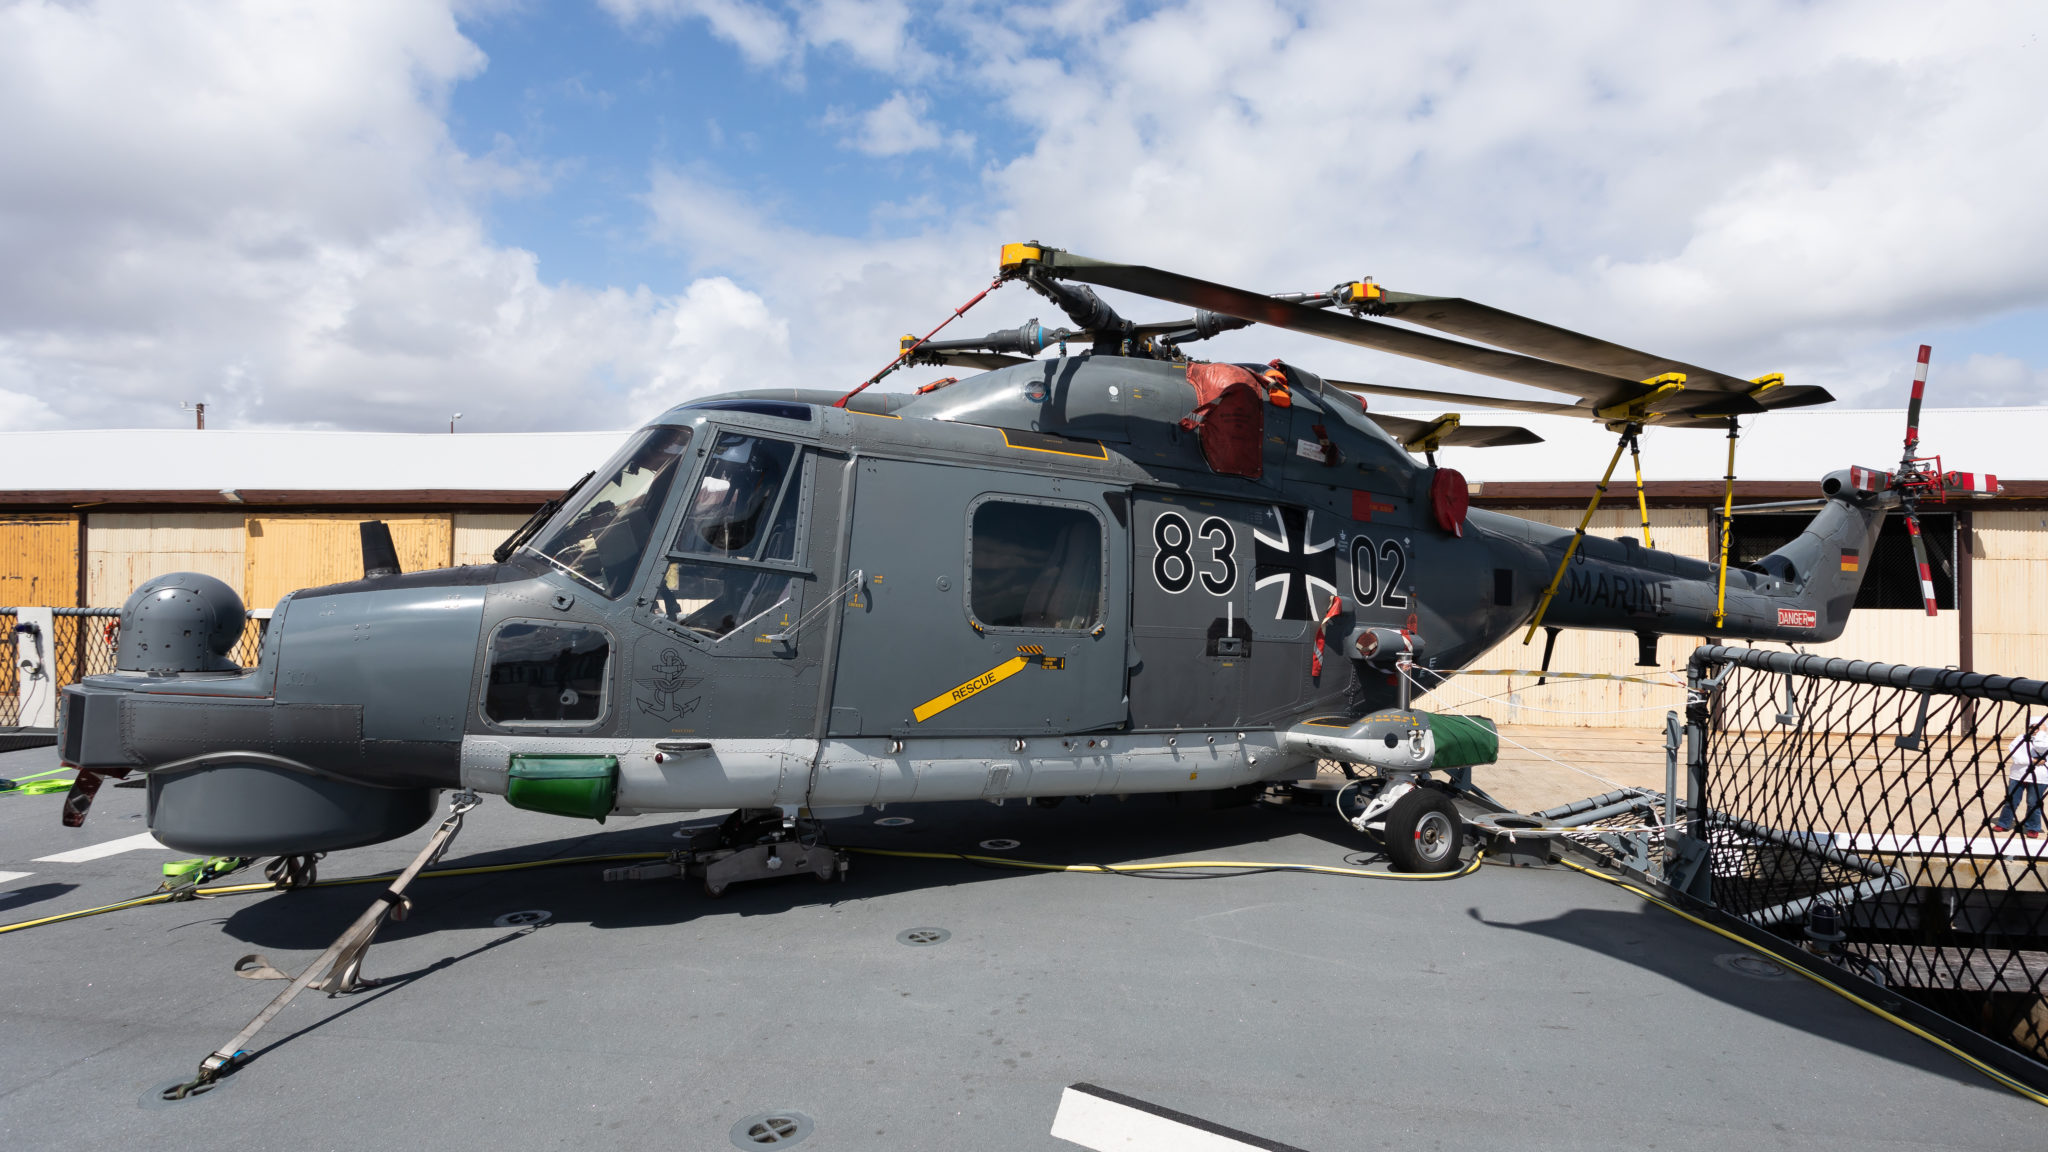 German Frigate visits Fremantle Port with anti-submarine helicopters onboard